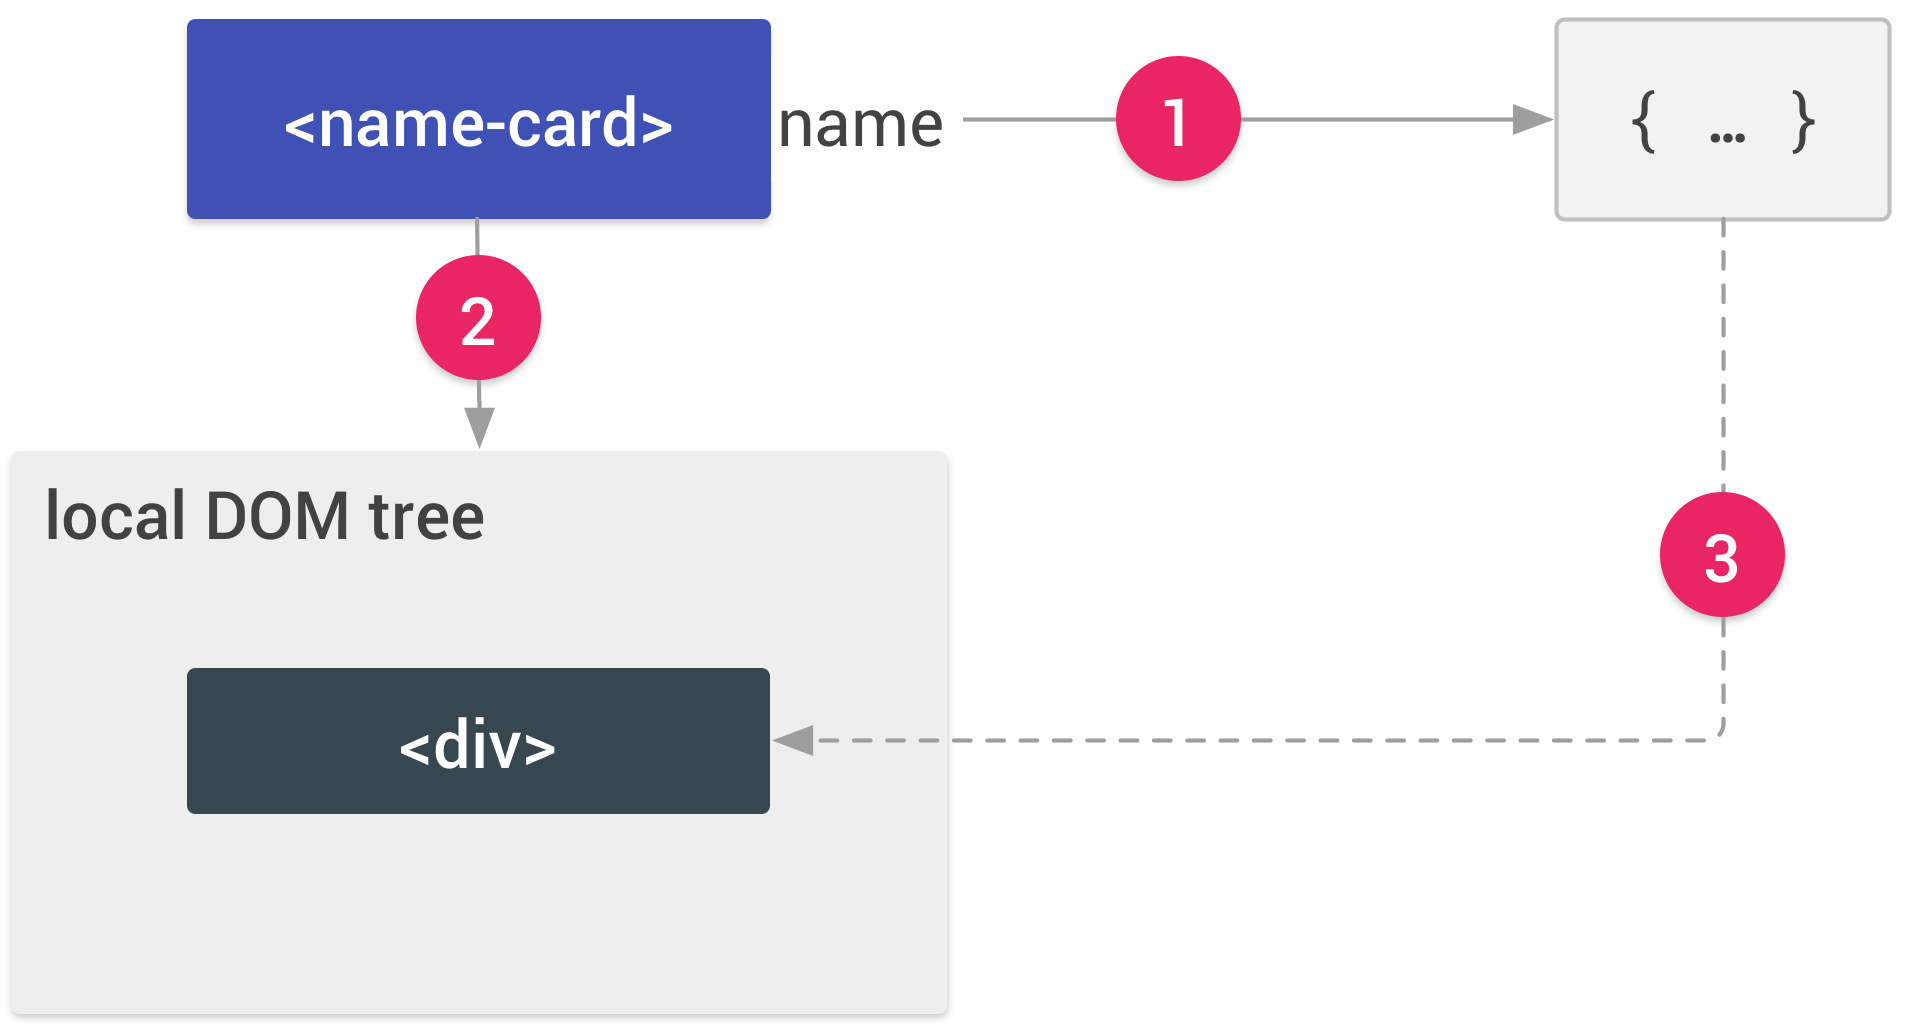 A name-card element with a property, name. An arrow labeled 1 connects the name property toa JavaScript object. An arrow labeled 2 connects the element to a box labeled local DOM treewhich contains a single element, div. An arrow labeled 3 connects the JavaScript object to thediv element.